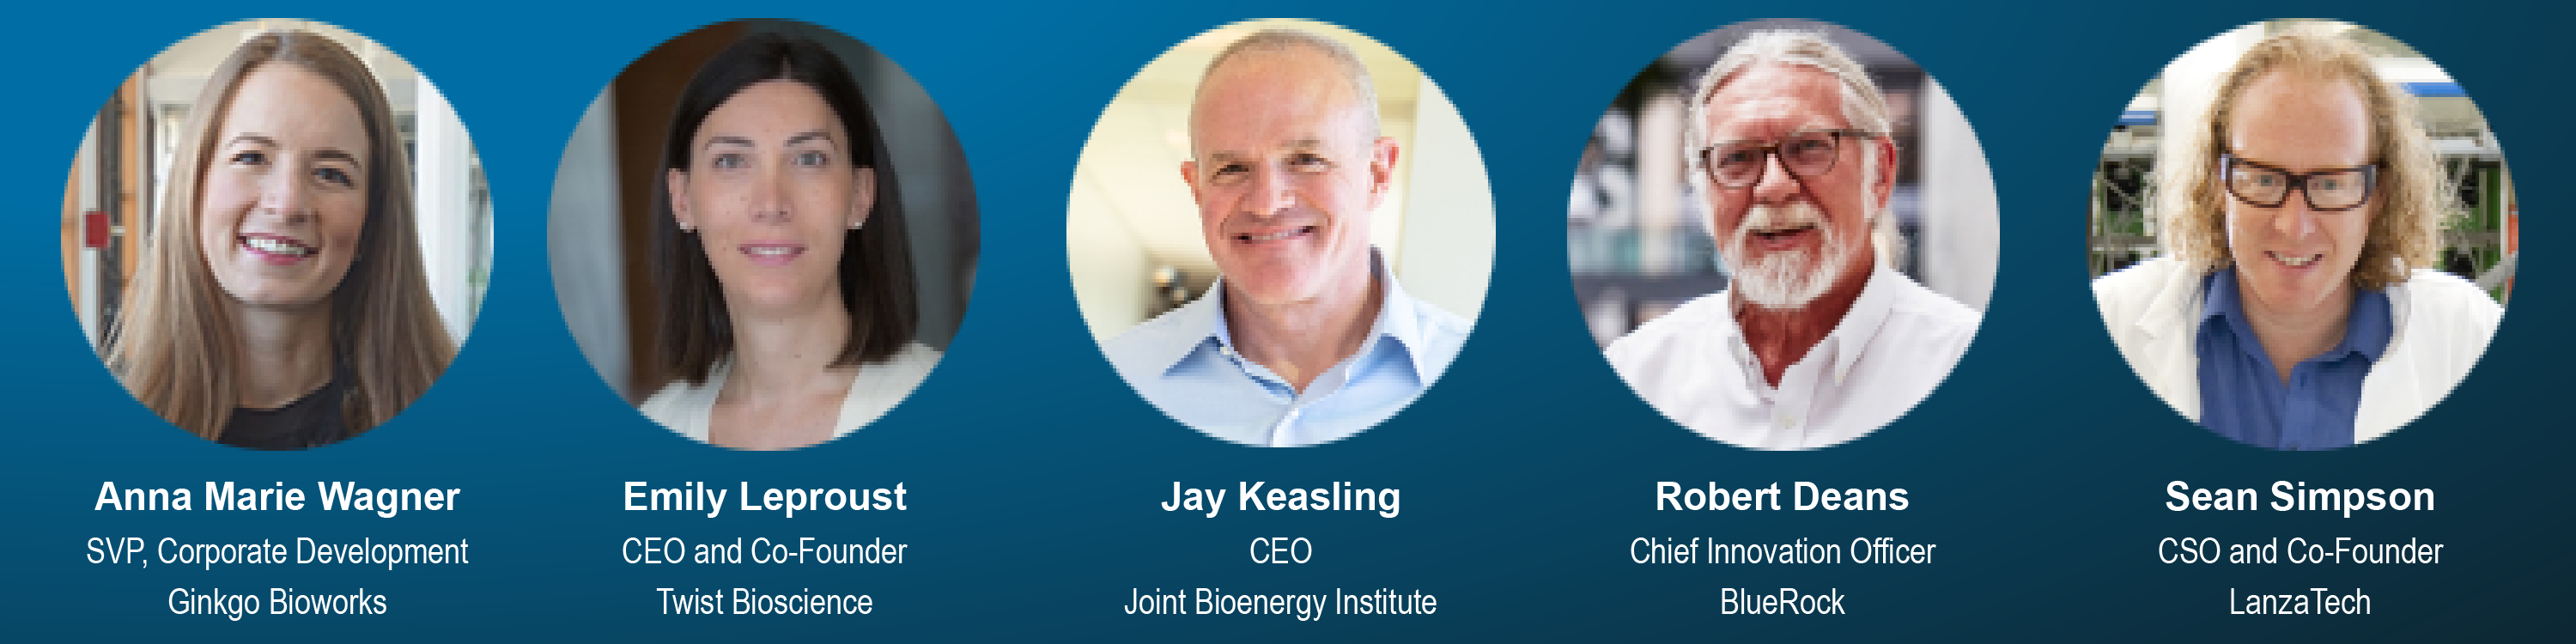 Featured Speakers for Canada SynBio 2020